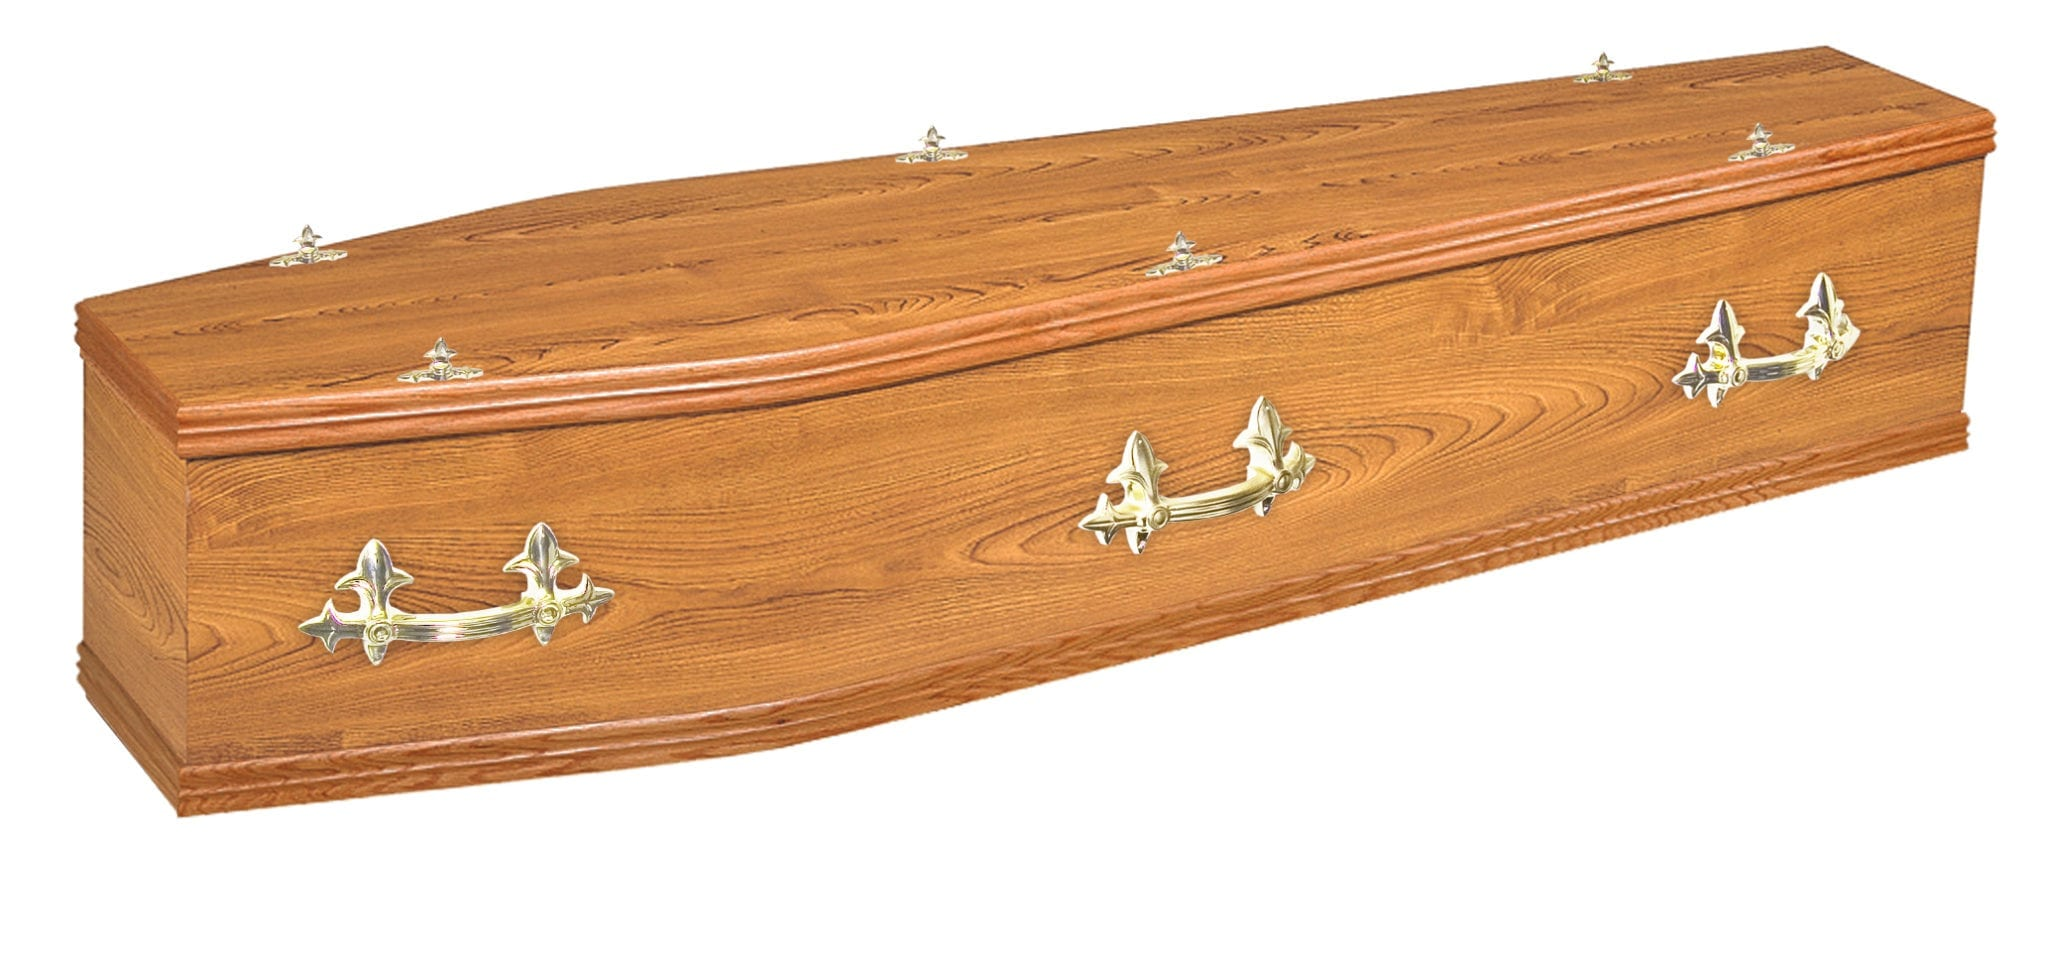 Traditional rookwood elm coffin